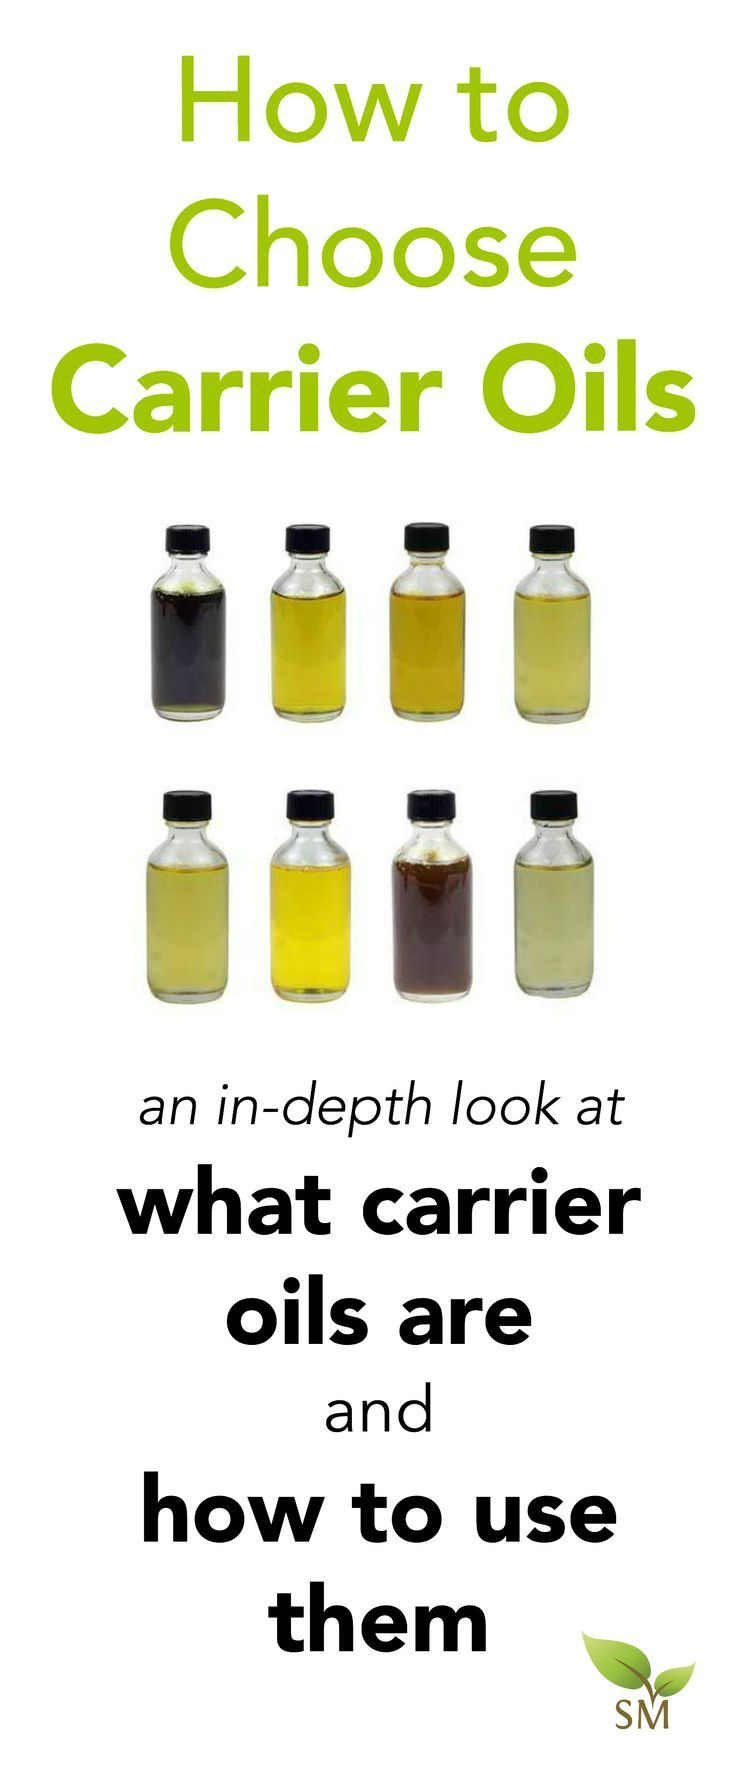 Carrier oils are a necessity for making your own natural body and skincare products, but do you know how to use them? Check out this in-depth post on how to choose carrier oils. (scheduled via http://www.tailwindapp.com?utm_source=pinterest&utm_medium=twpin&utm_content=post6564292&utm_campaign=scheduler_attribution)